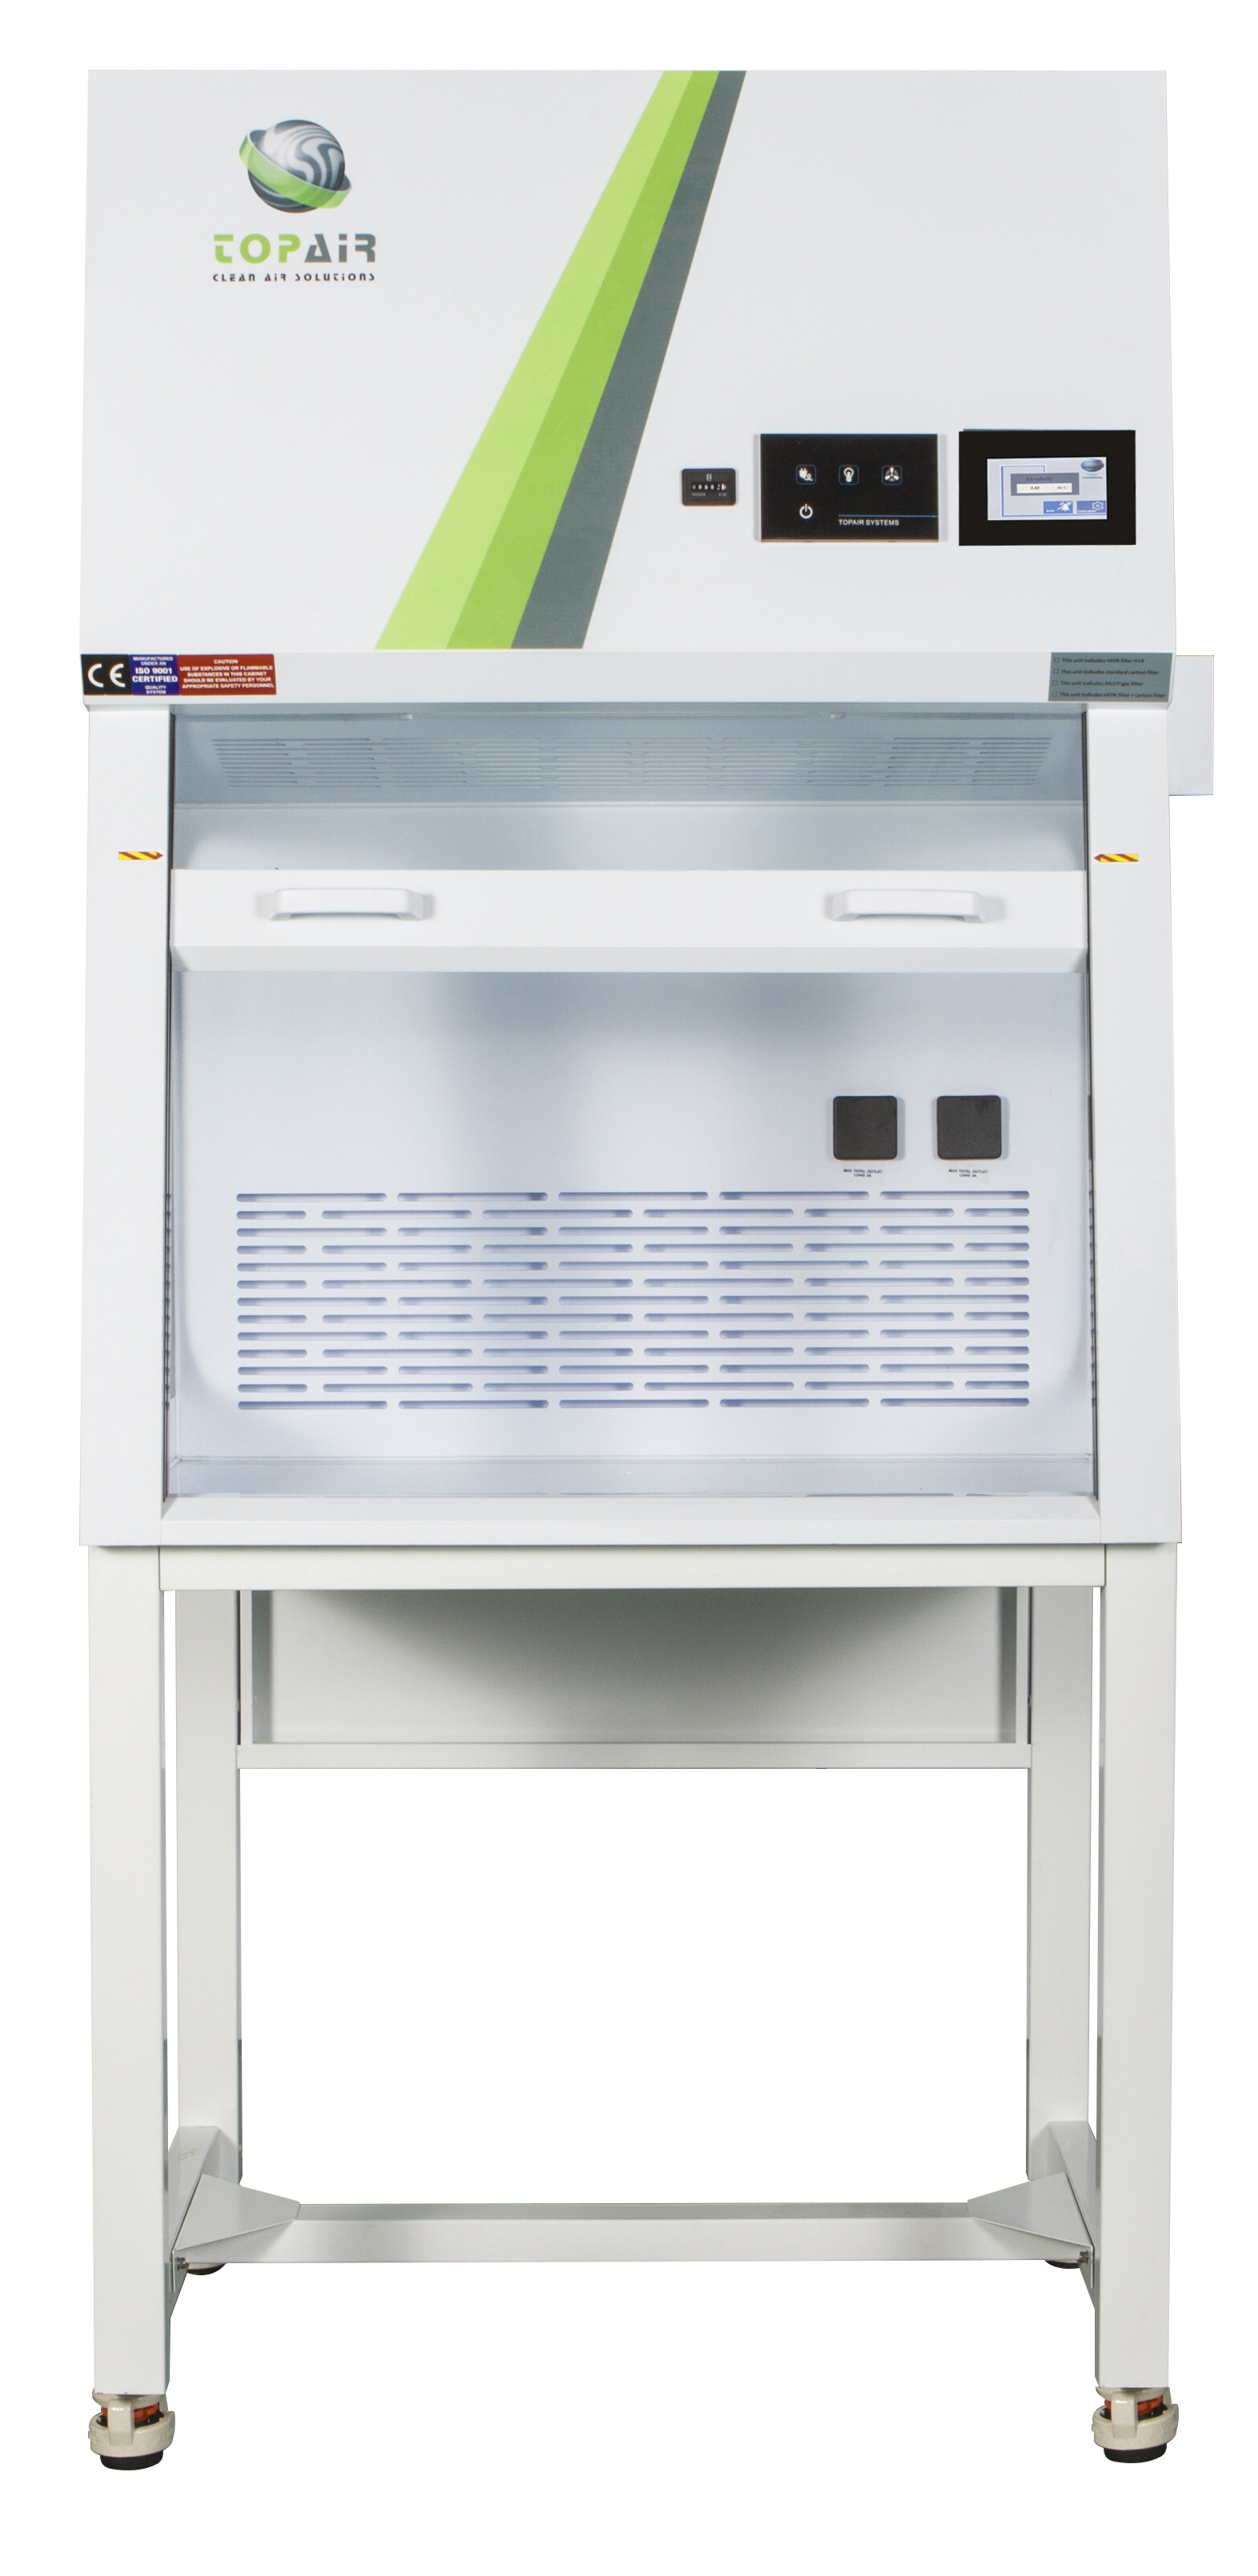 Polypropylene Ductless Fume Hood With Vav Topair Lab